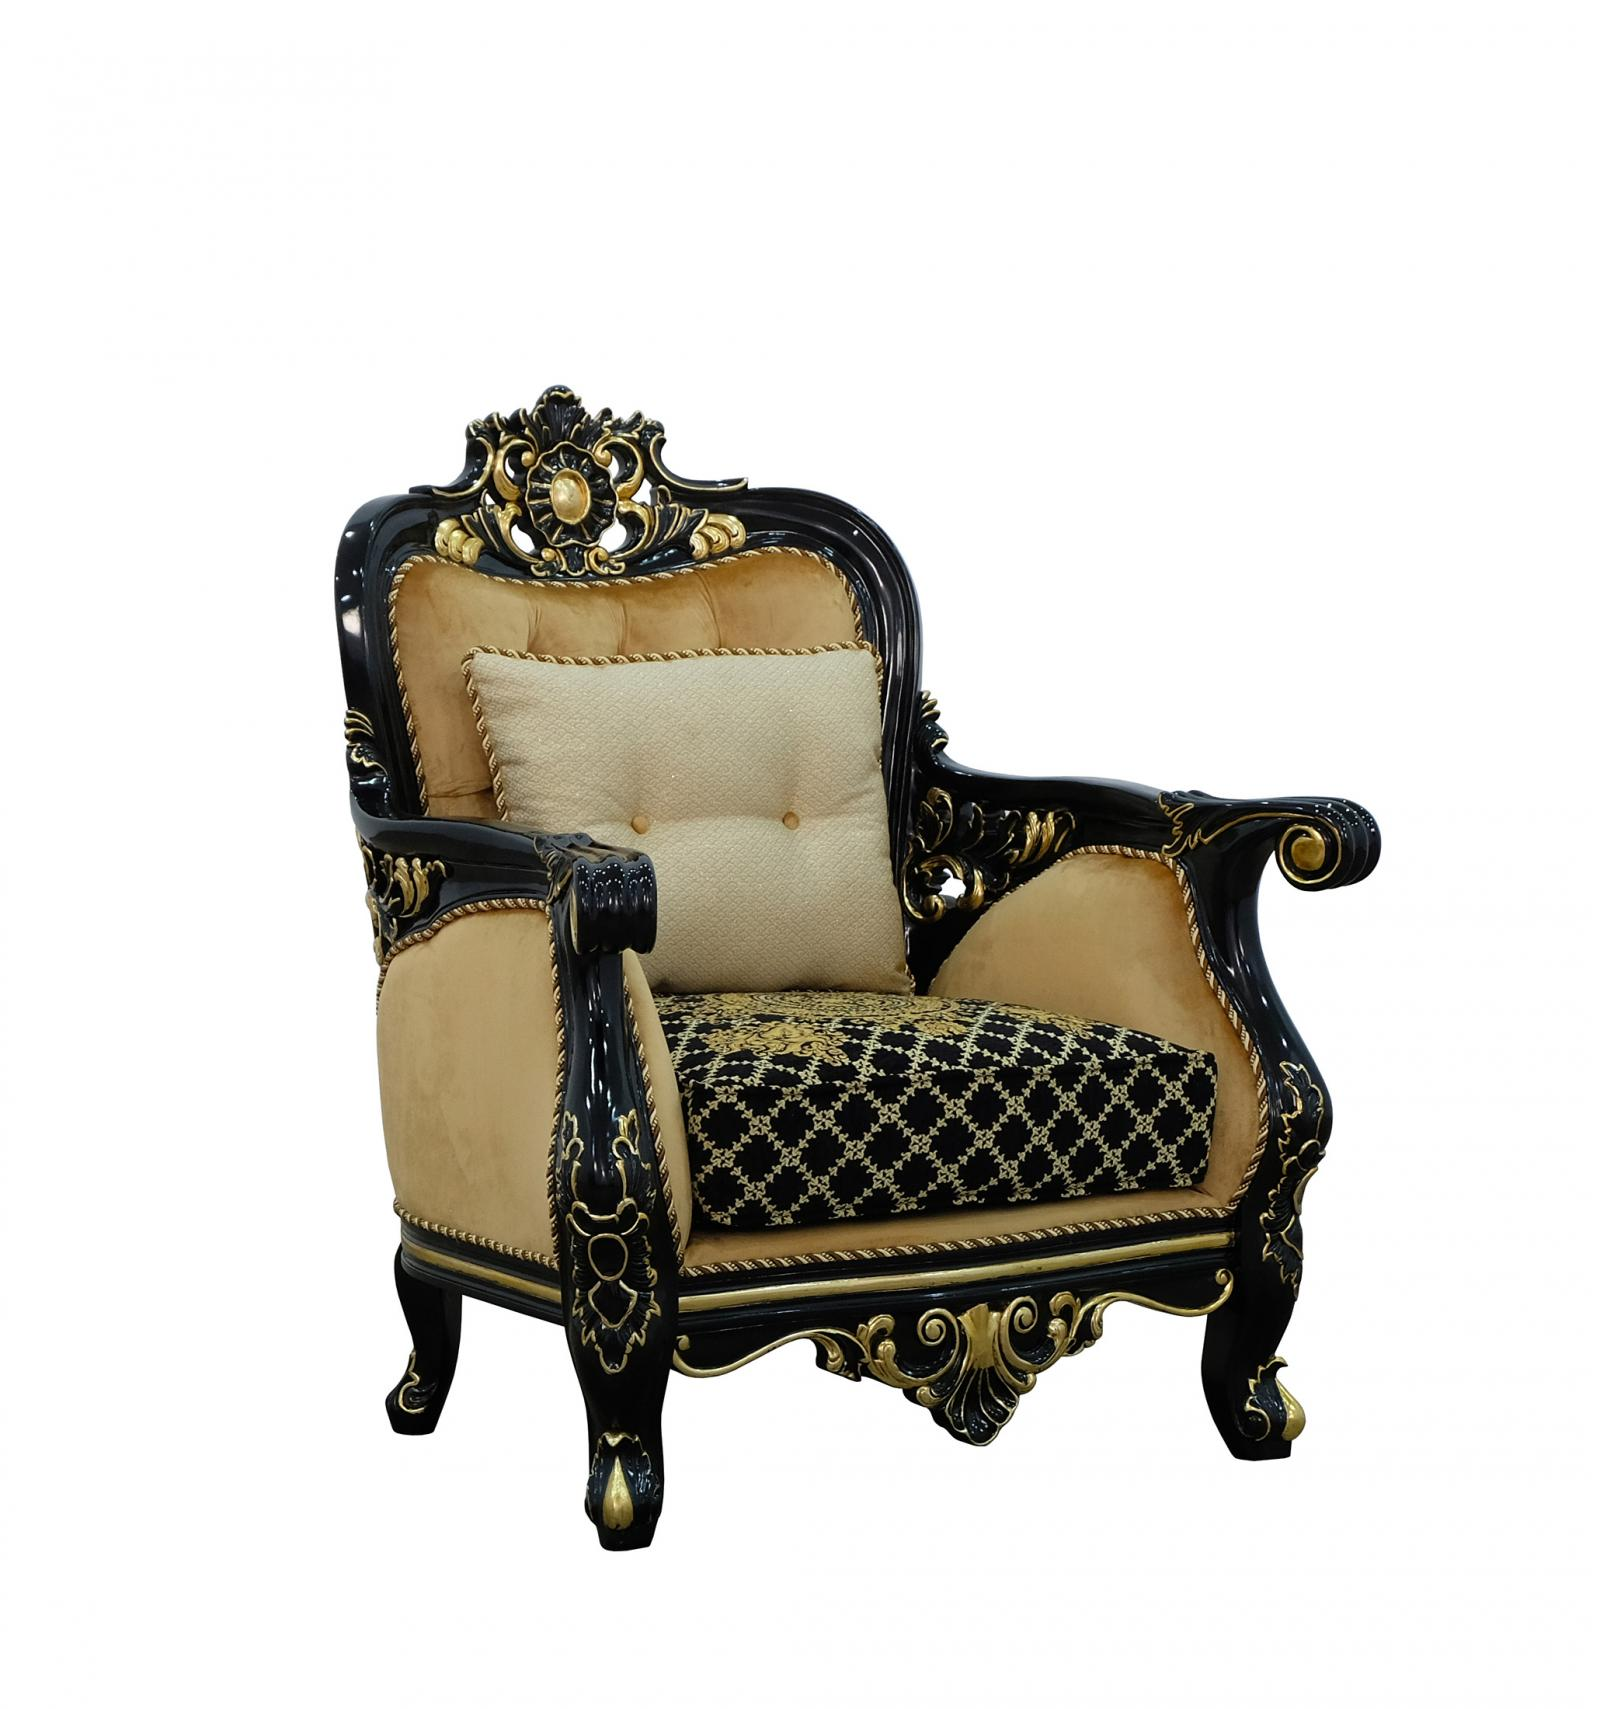 Classic  Traditional Beige  Gold  Antique   Black Wood  Solid Hardwood and Velvet Arm Chair EUROPEAN FURNITURE 30019-C